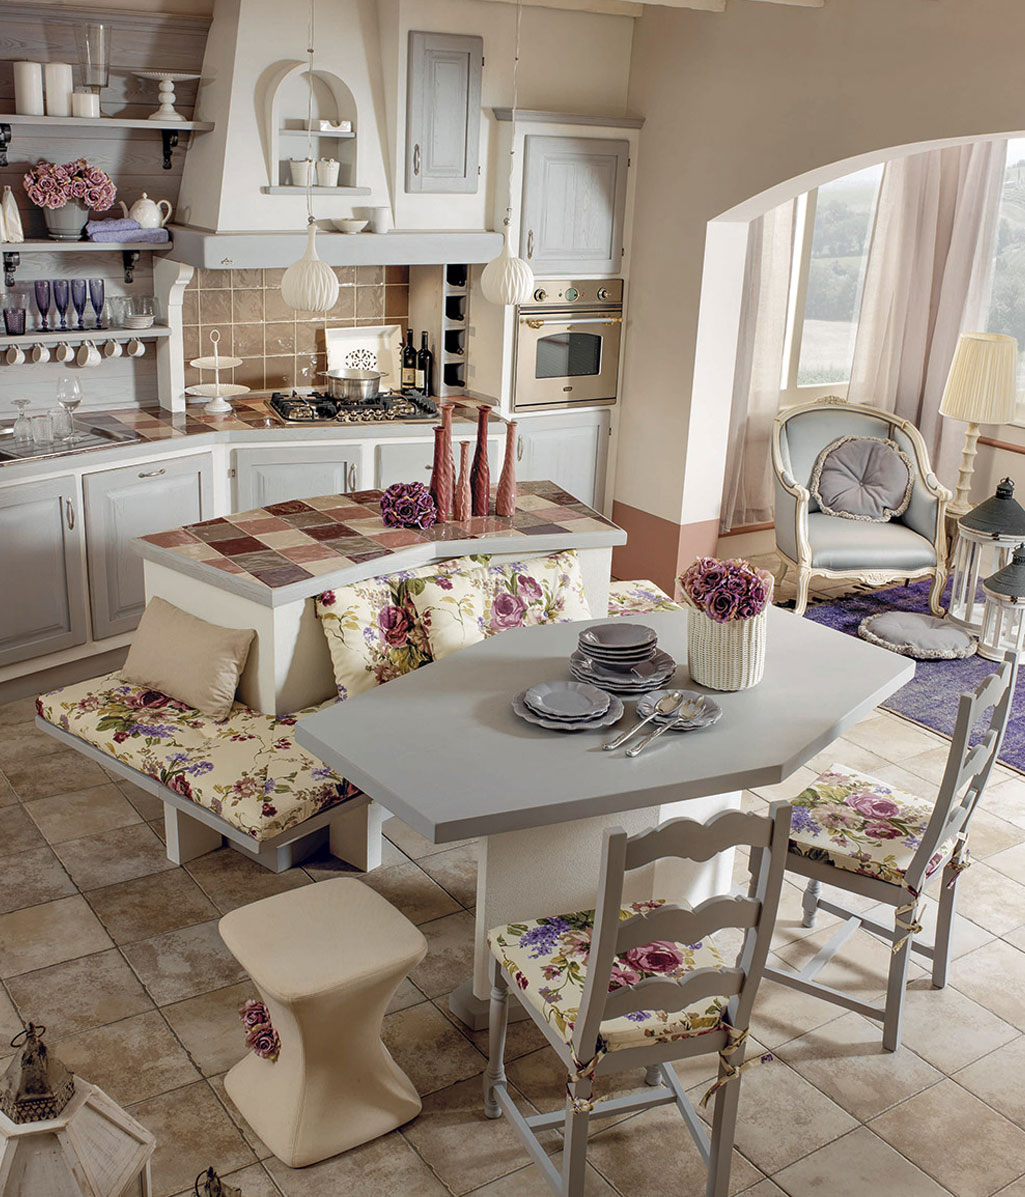 Arredo country chic zappalorto cucine toscane with for Arredamento toscana